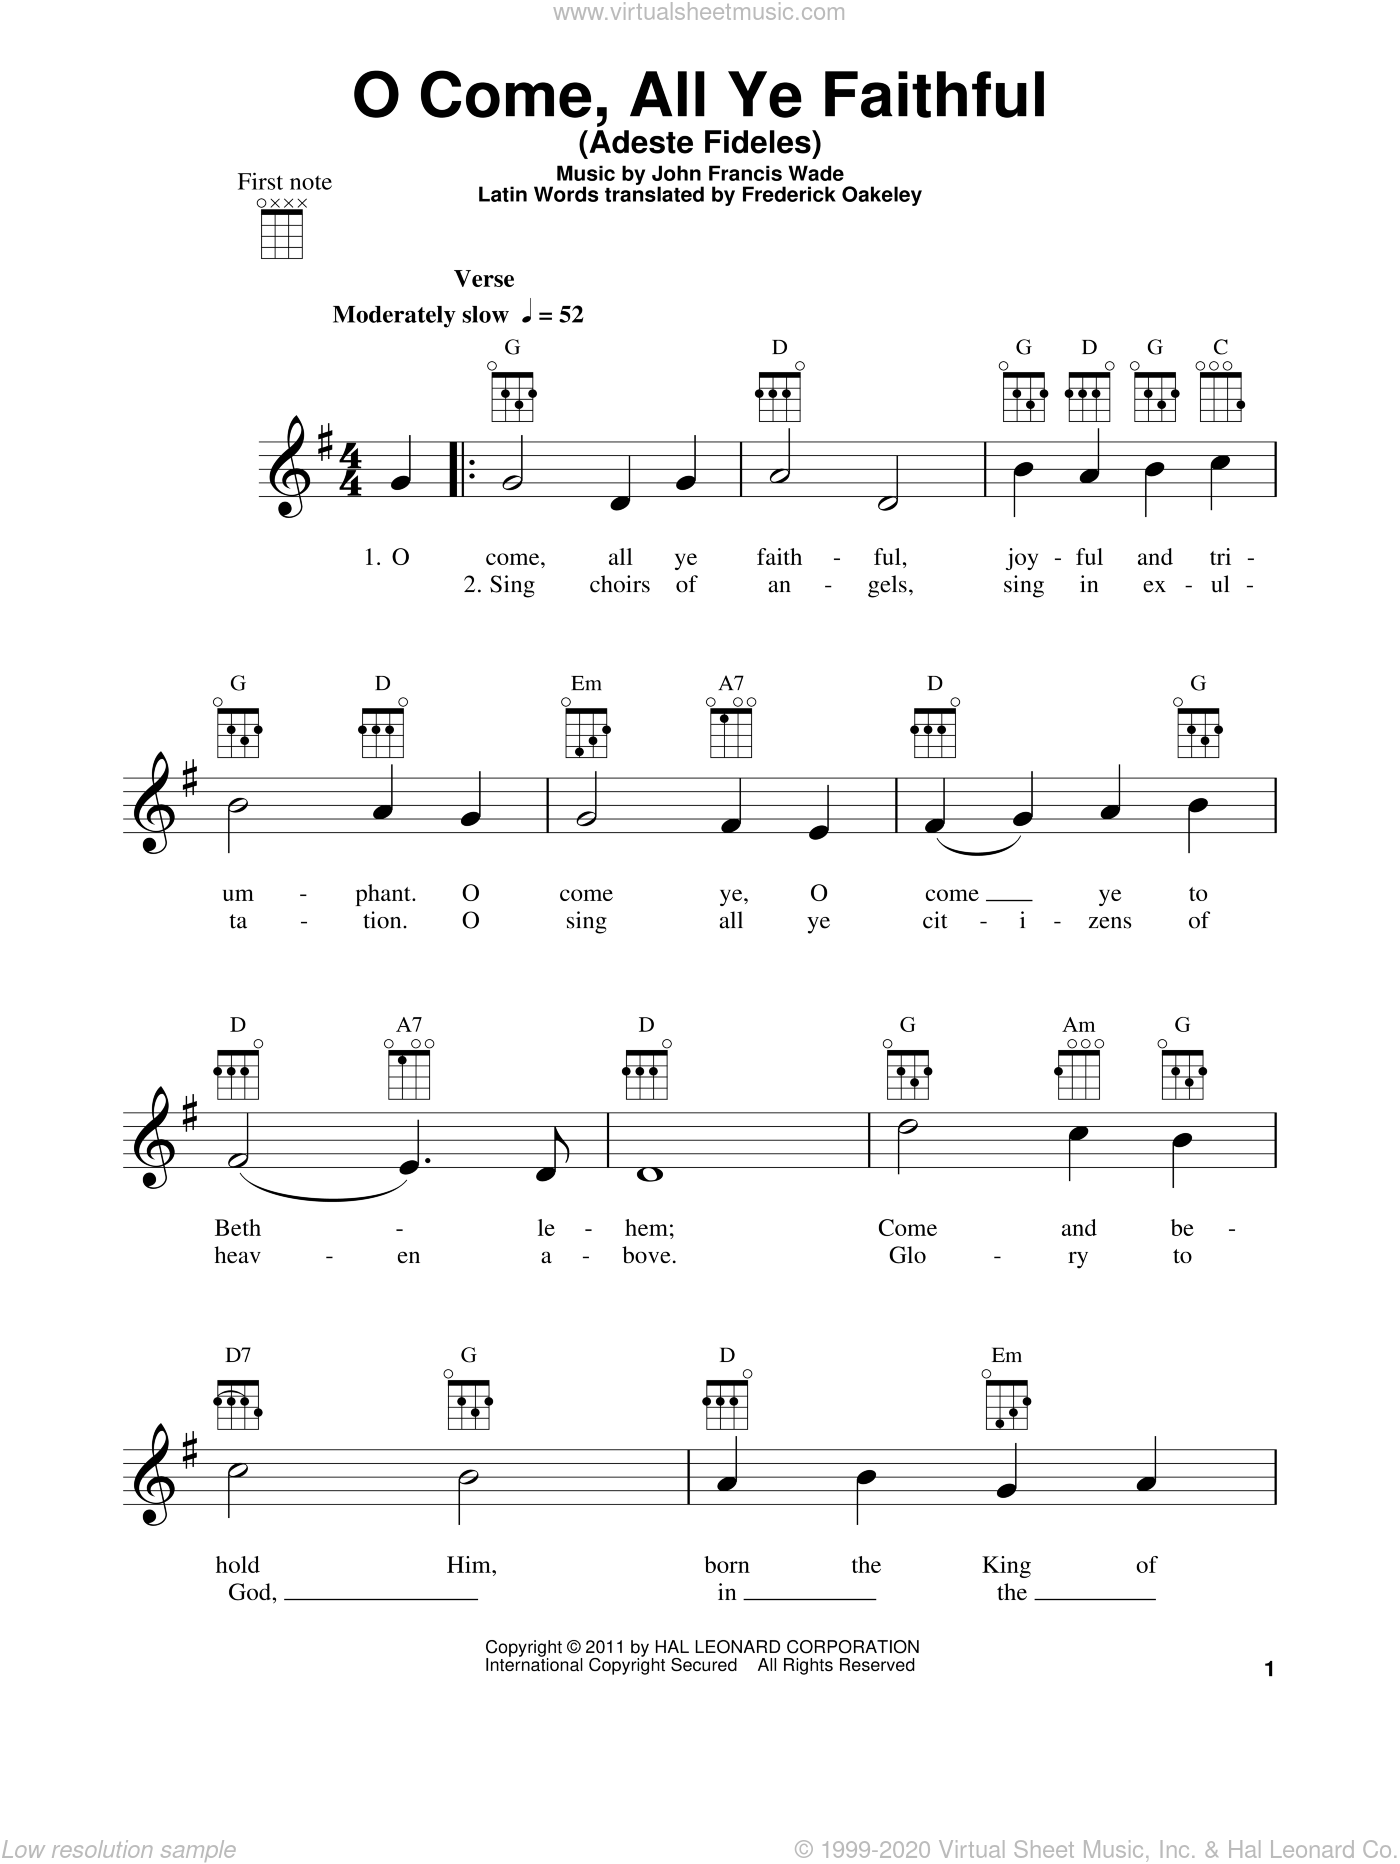 O Come, All Ye Faithful (Adeste Fideles) sheet music for ukulele by John Francis Wade and Frederick Oakeley, intermediate